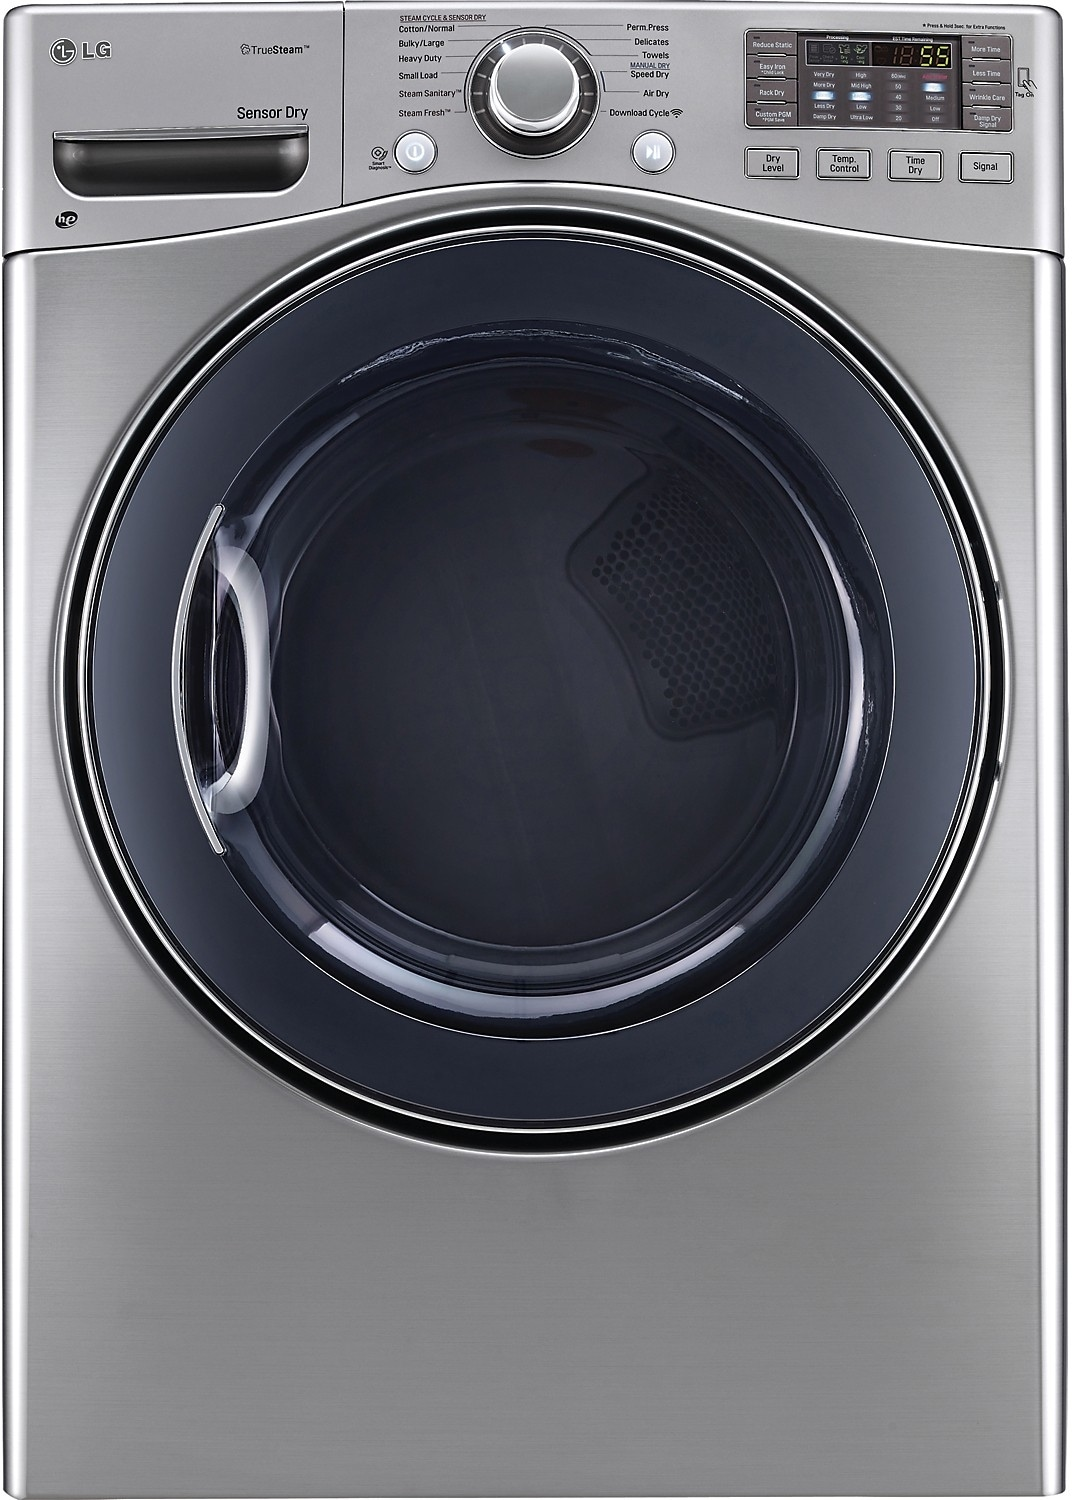 Washers and Dryers - LG 7.4 Cu. Ft. Ultra-Large Capacity High-Efficiency Gas SteamDryer™ – Graphite Steel